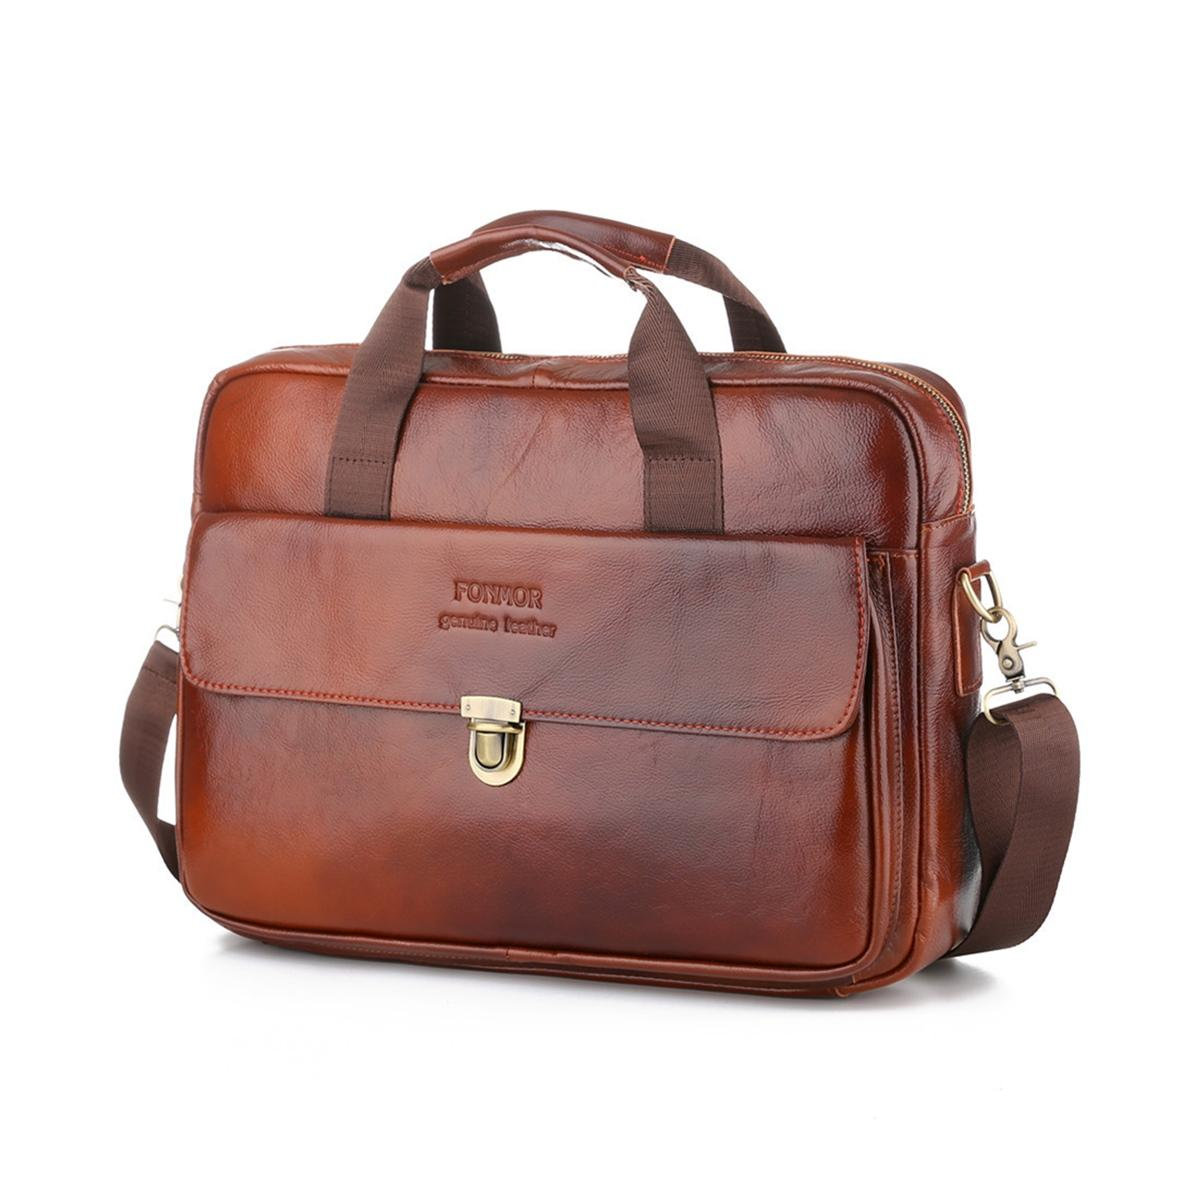 US Men/'s Business Leather Briefcase Handbag Shoulder Messenger Tote Laptop Bag